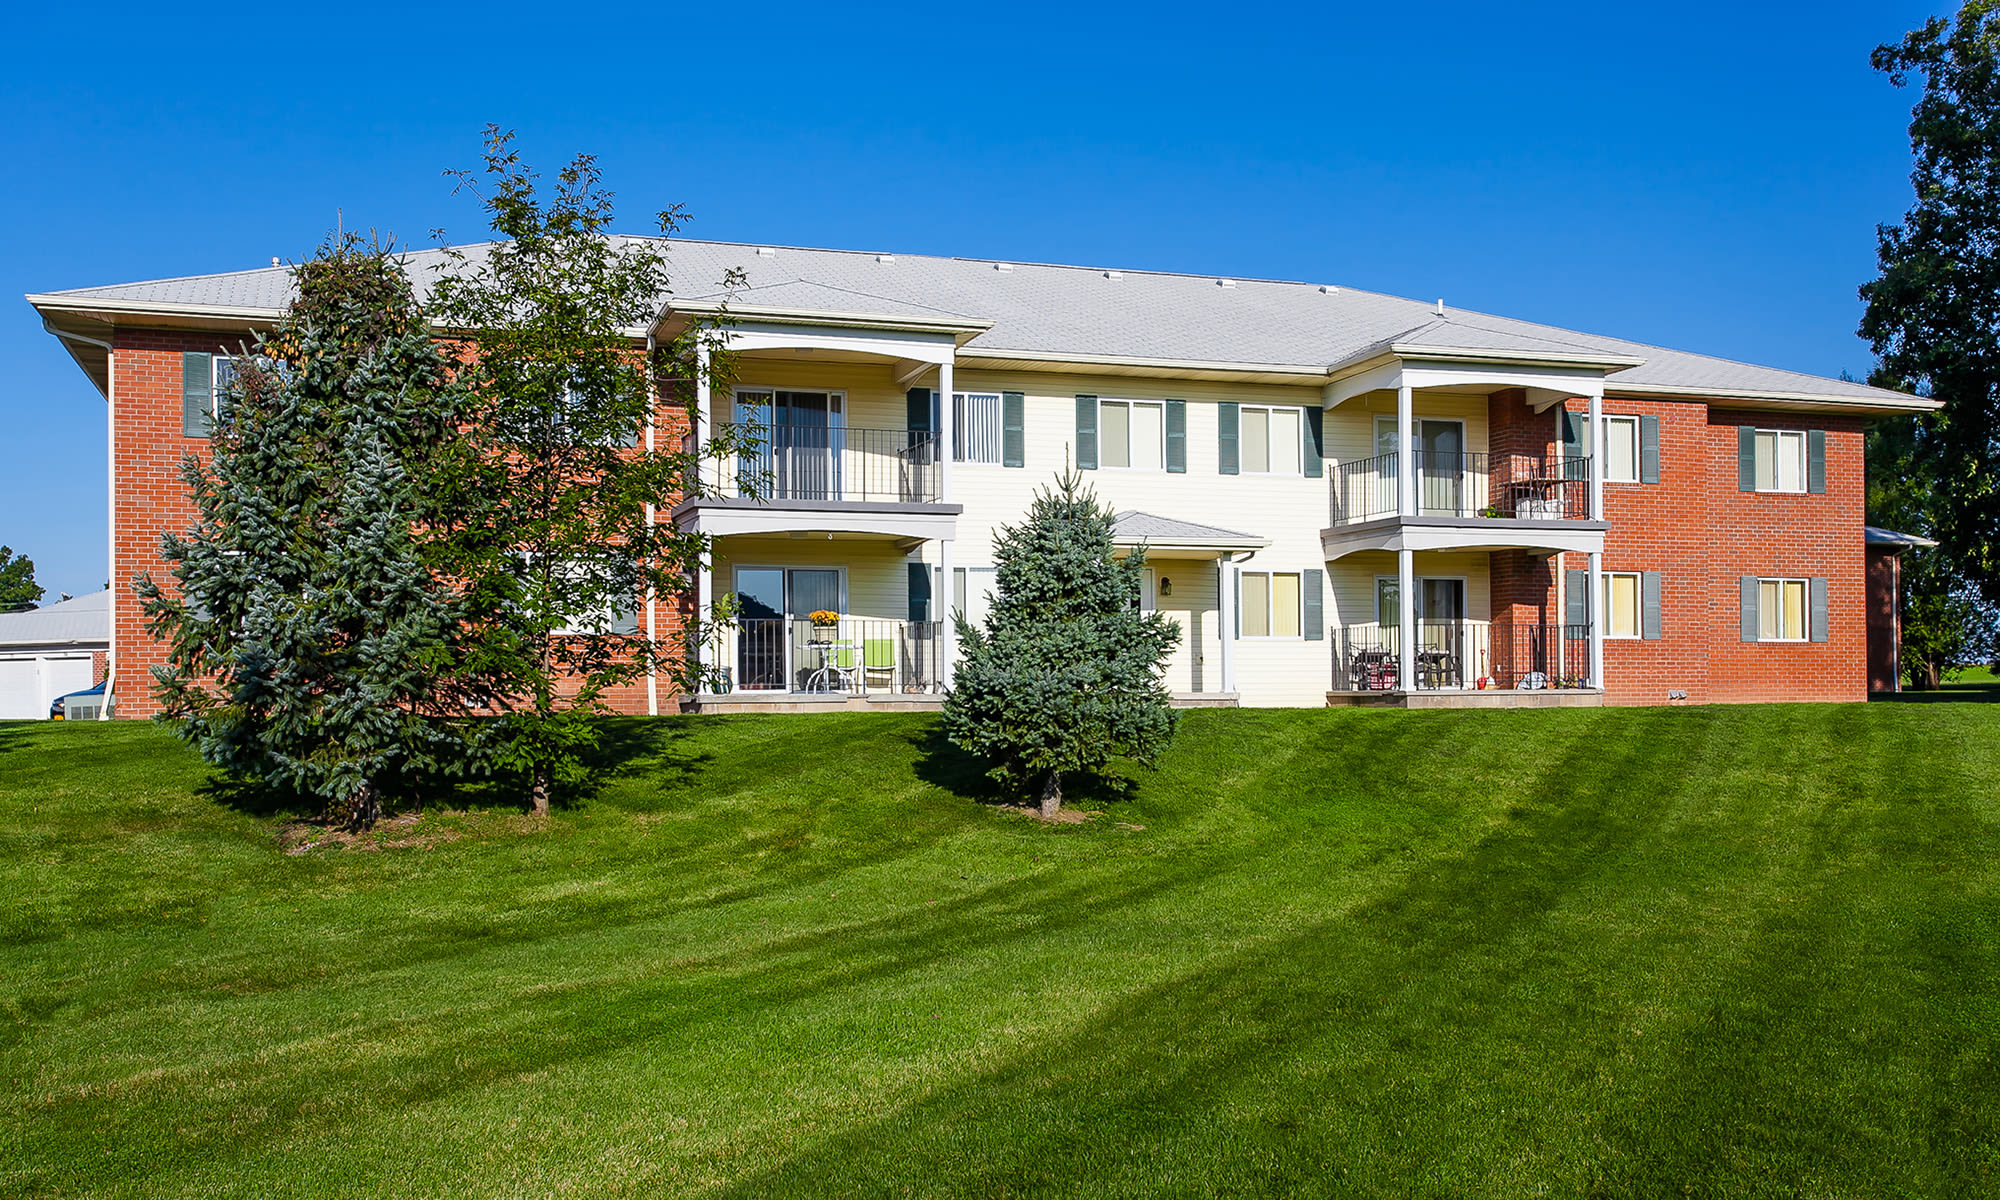 Apartments in Canandaigua, NY